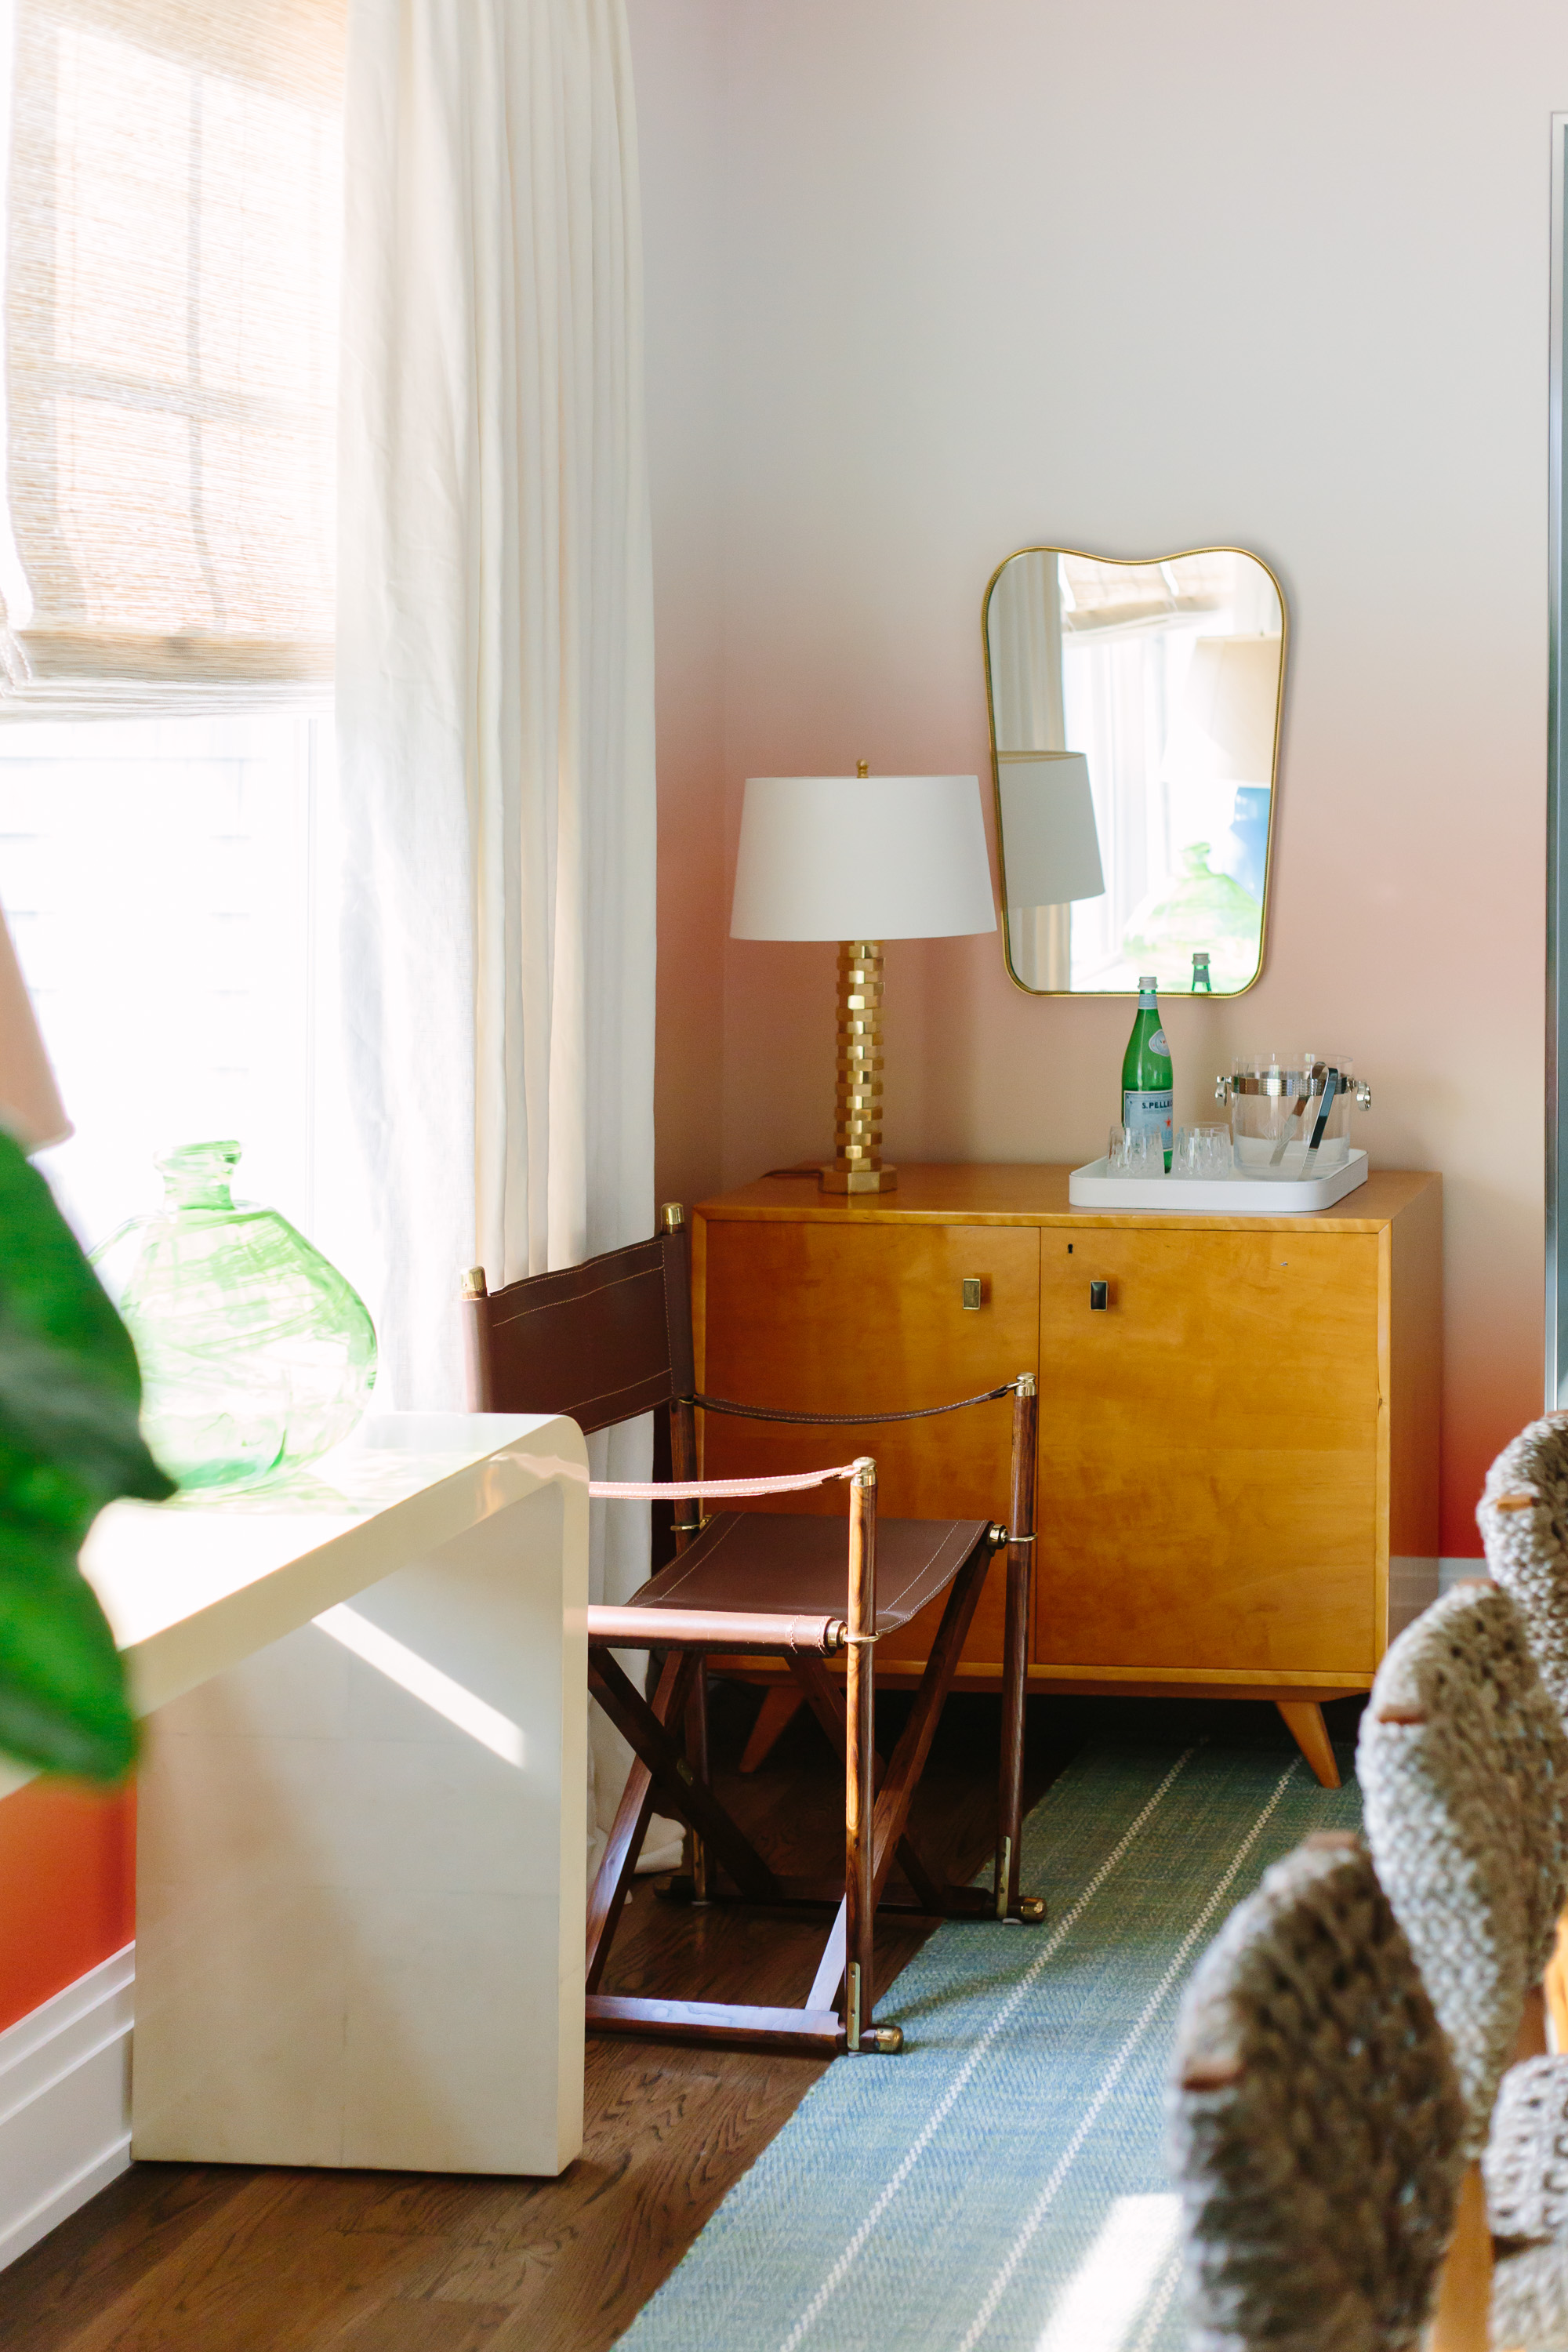 2017 hampton designer showhouse brady design a charming room even though i m not a big fan of orange typically i loved the ombre wallpaper by brett design inc how nice is that and it reminded me of a summer sunset